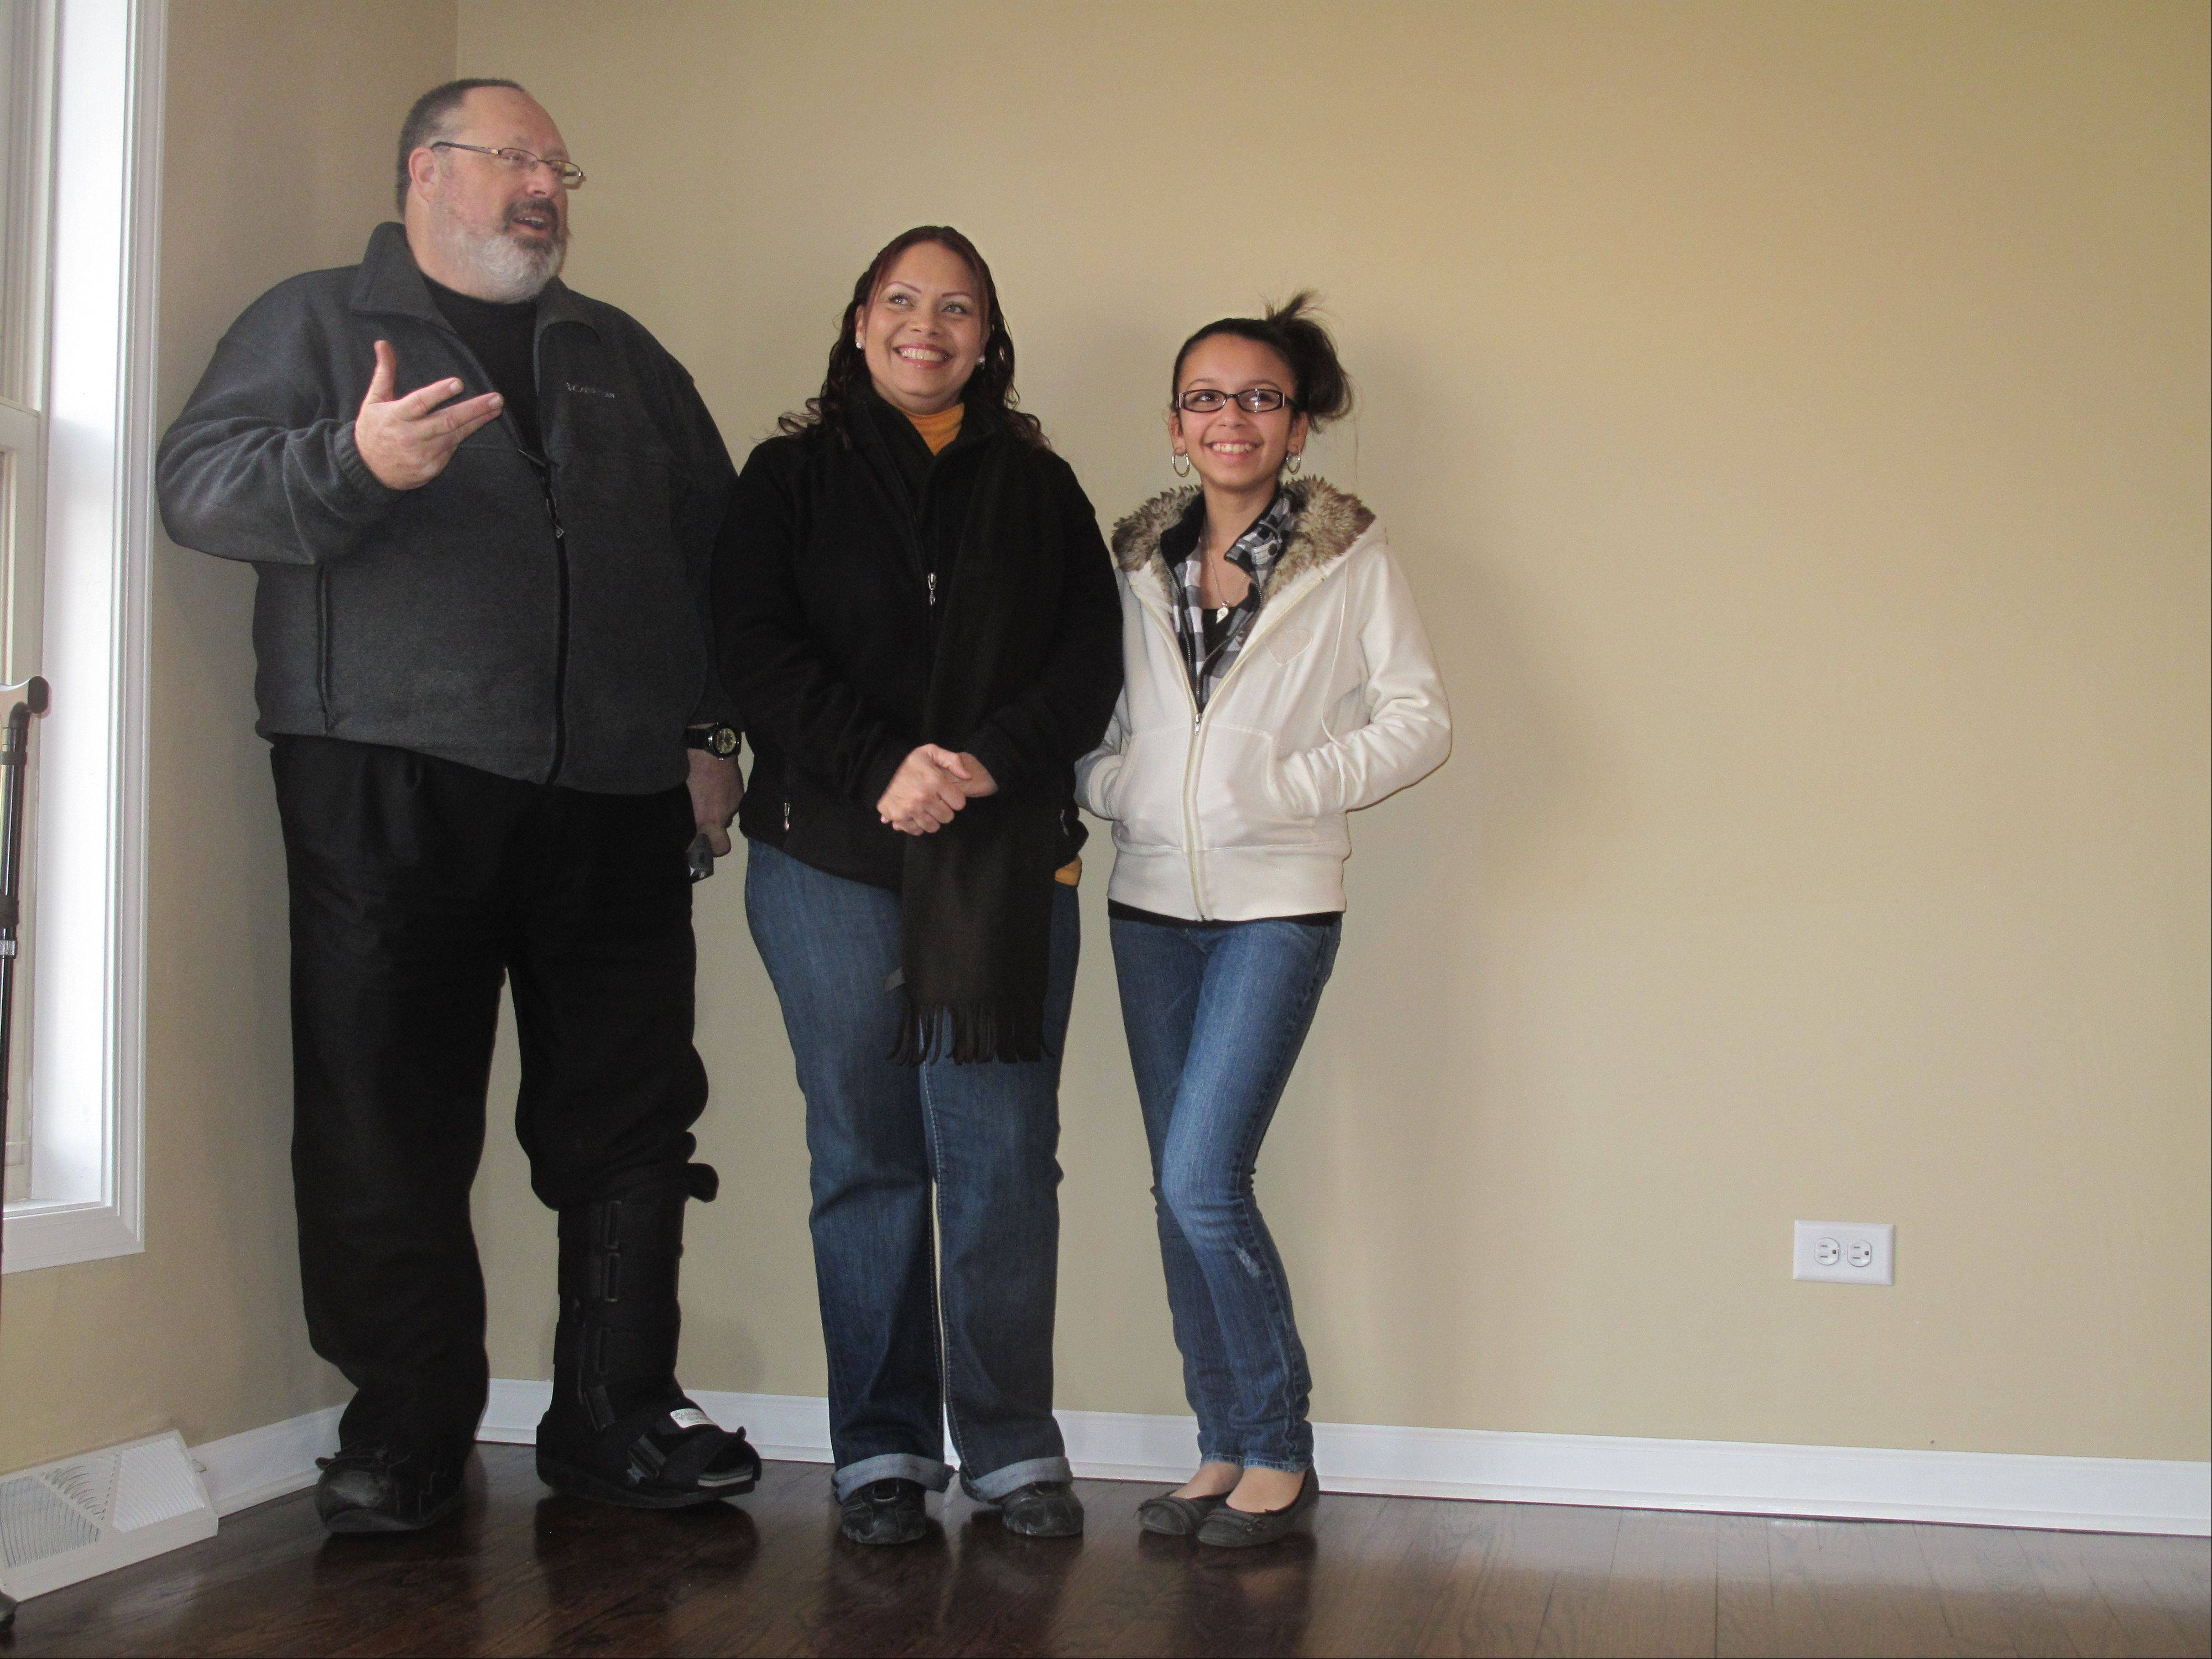 Jeff Barrett, executive director of Fox Valley Habitat for Humanity, introduces Enid Vargas and her daughter Wilenid, 13, Saturday during a ceremony dedicating a rehabbed North Aurora townhouse to the mother-daughter pair.